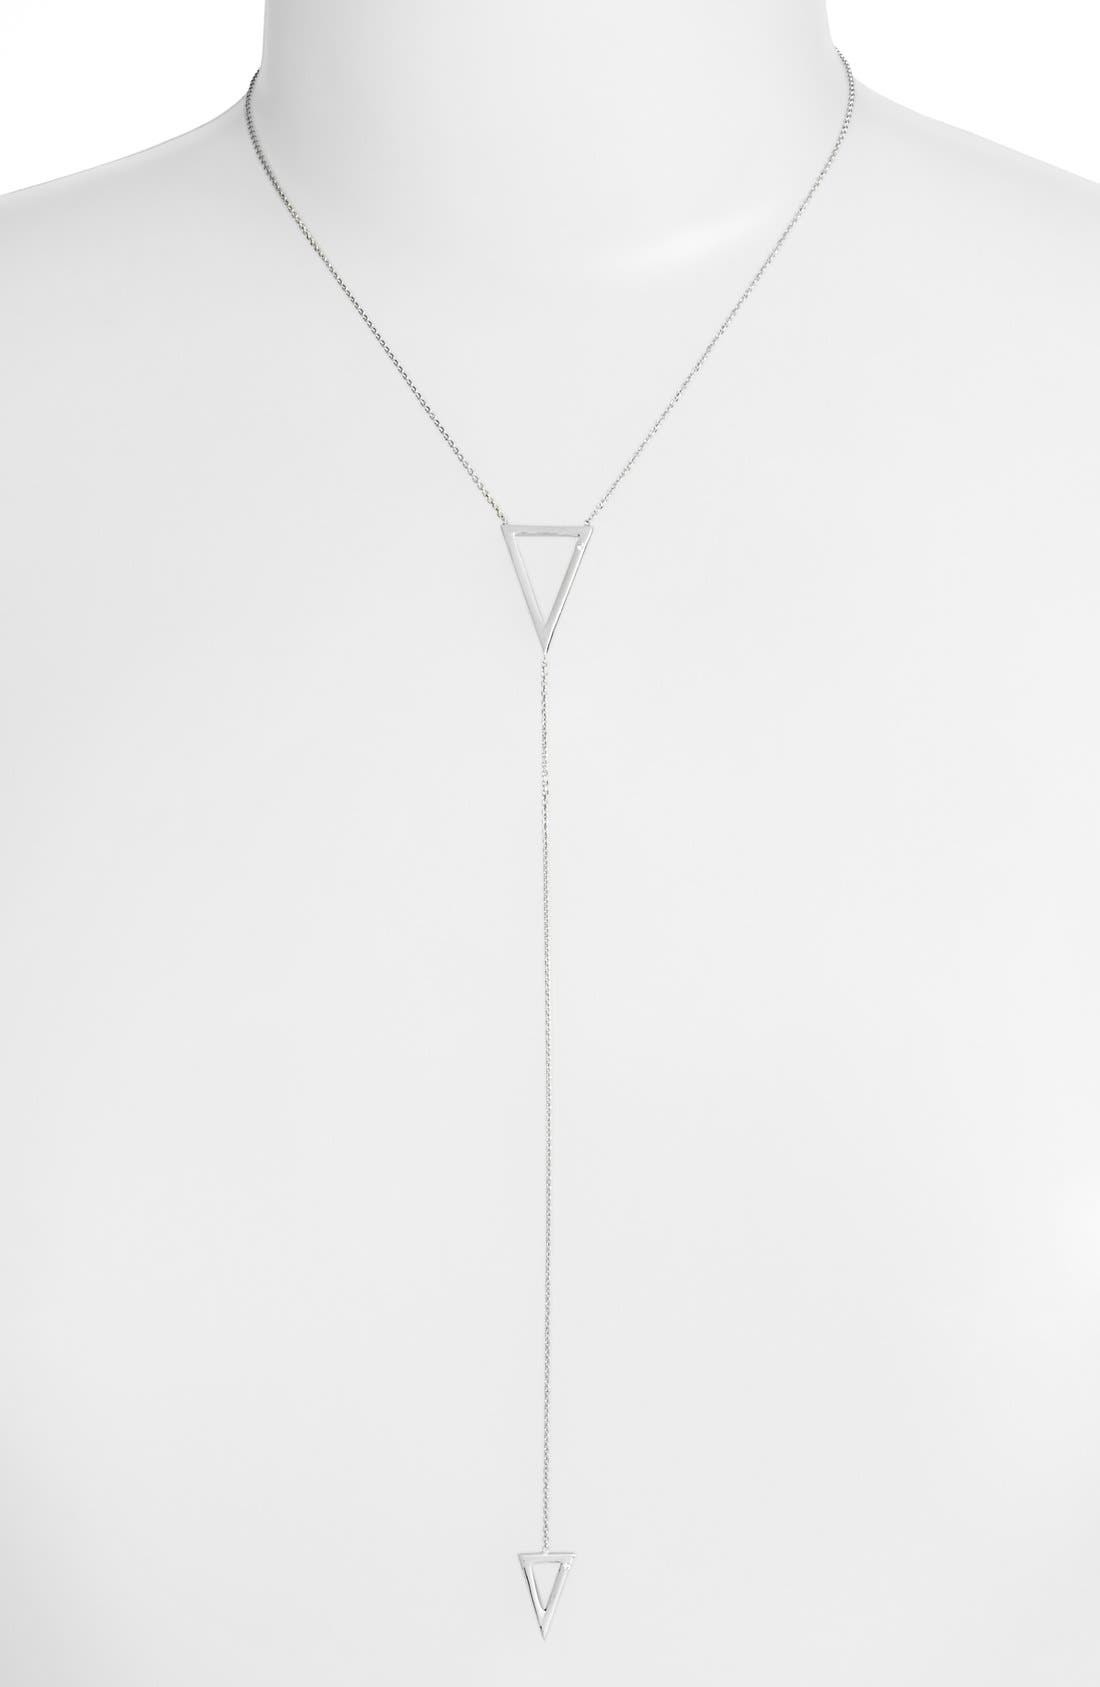 ARGENTO VIVO Lariat Necklace, Main, color, 040